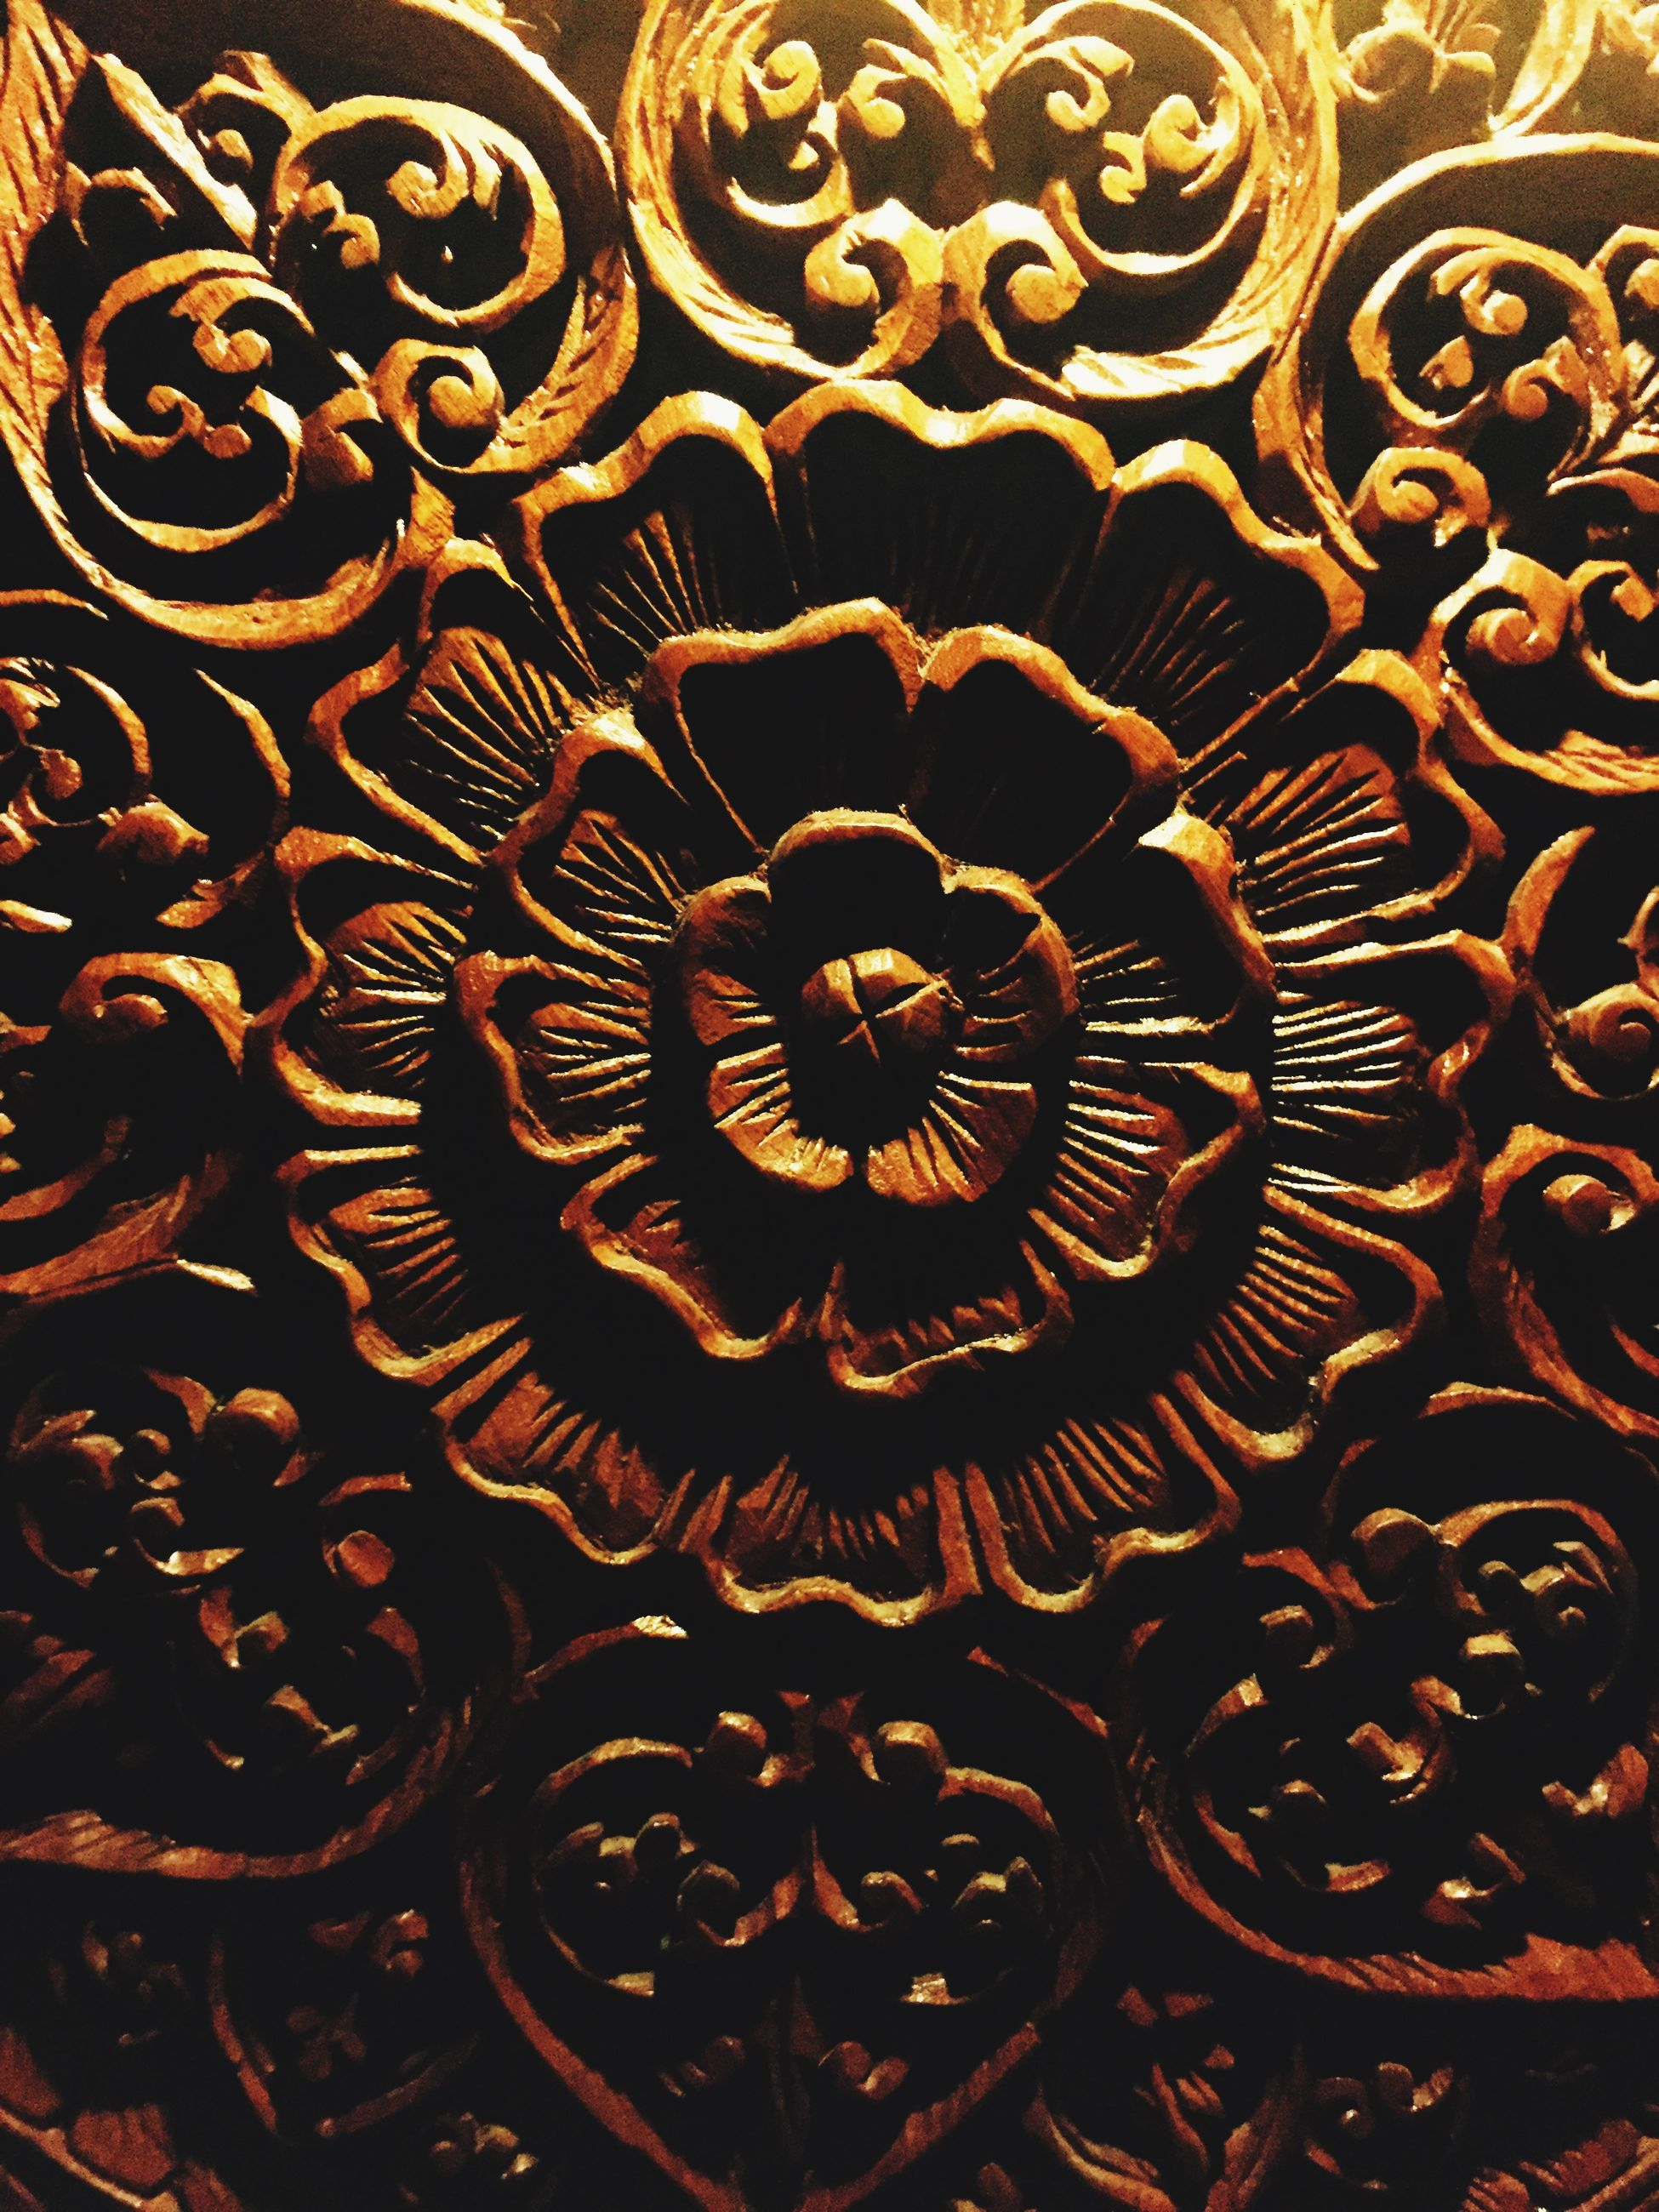 pattern, indoors, design, full frame, art and craft, art, backgrounds, creativity, ornate, floral pattern, metal, close-up, decoration, wall - building feature, textured, built structure, carving - craft product, no people, architecture, repetition